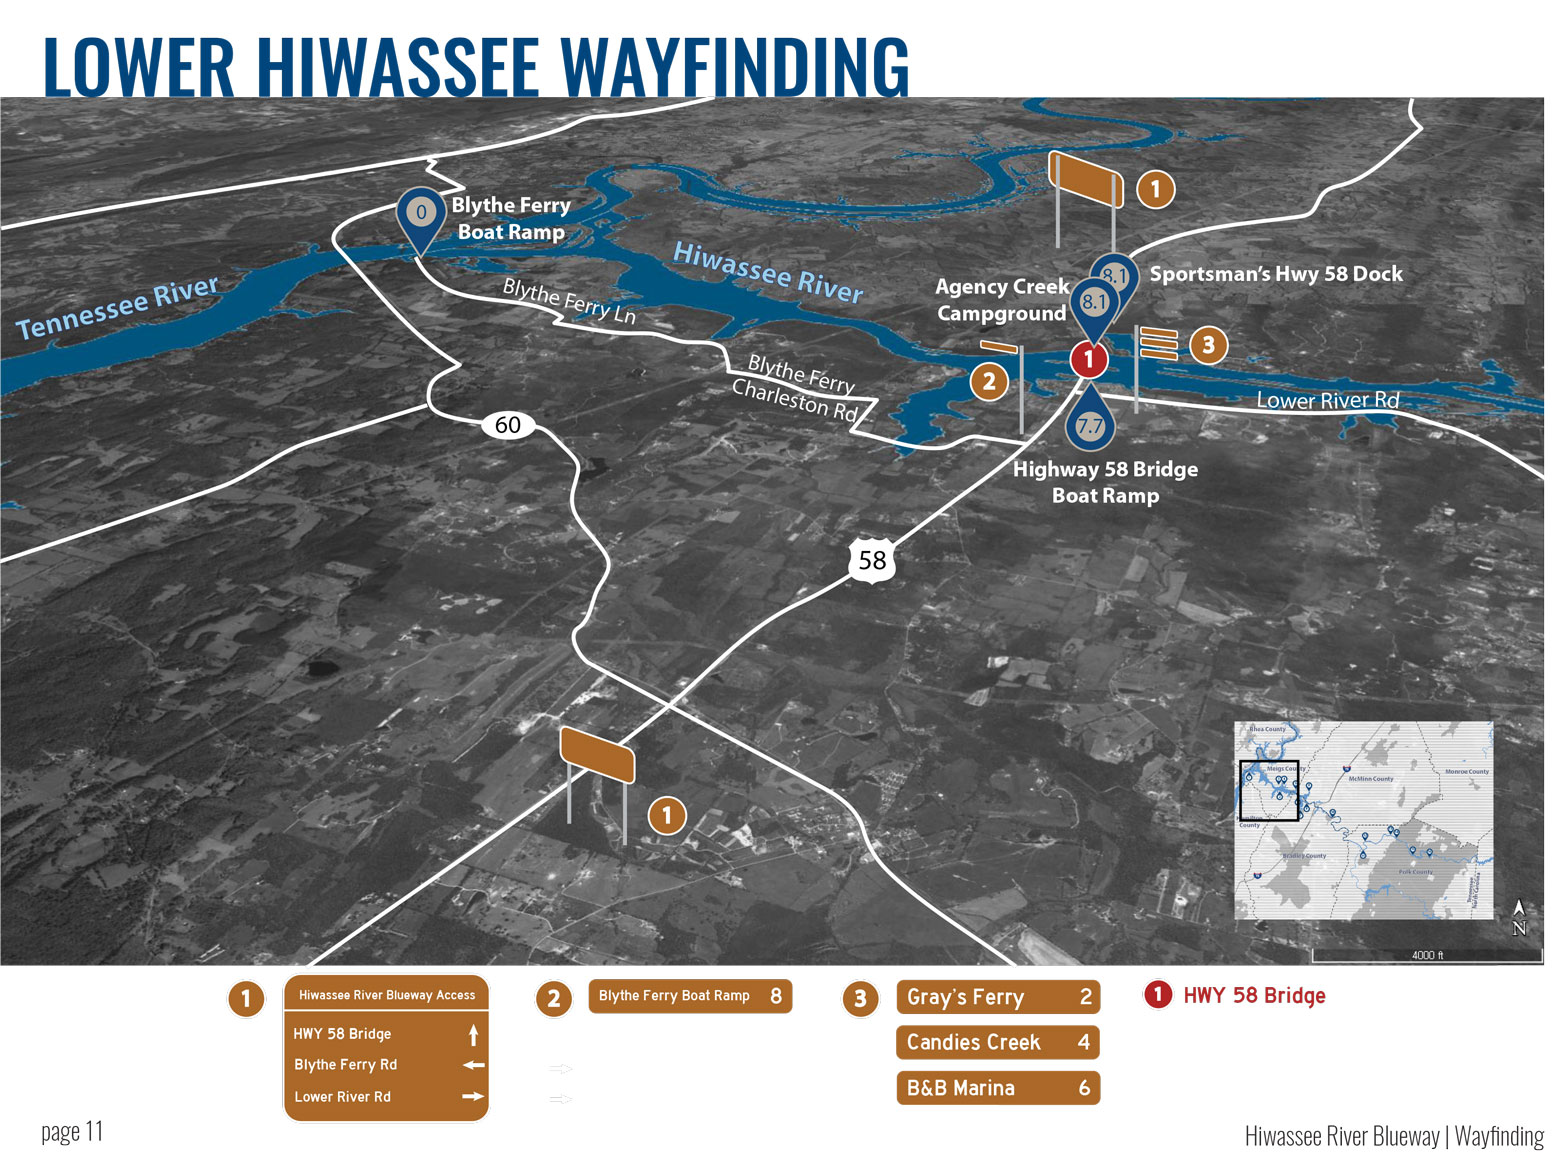 Pages-from-HiwasseeBluewayManual2016-06-29-5.jpg